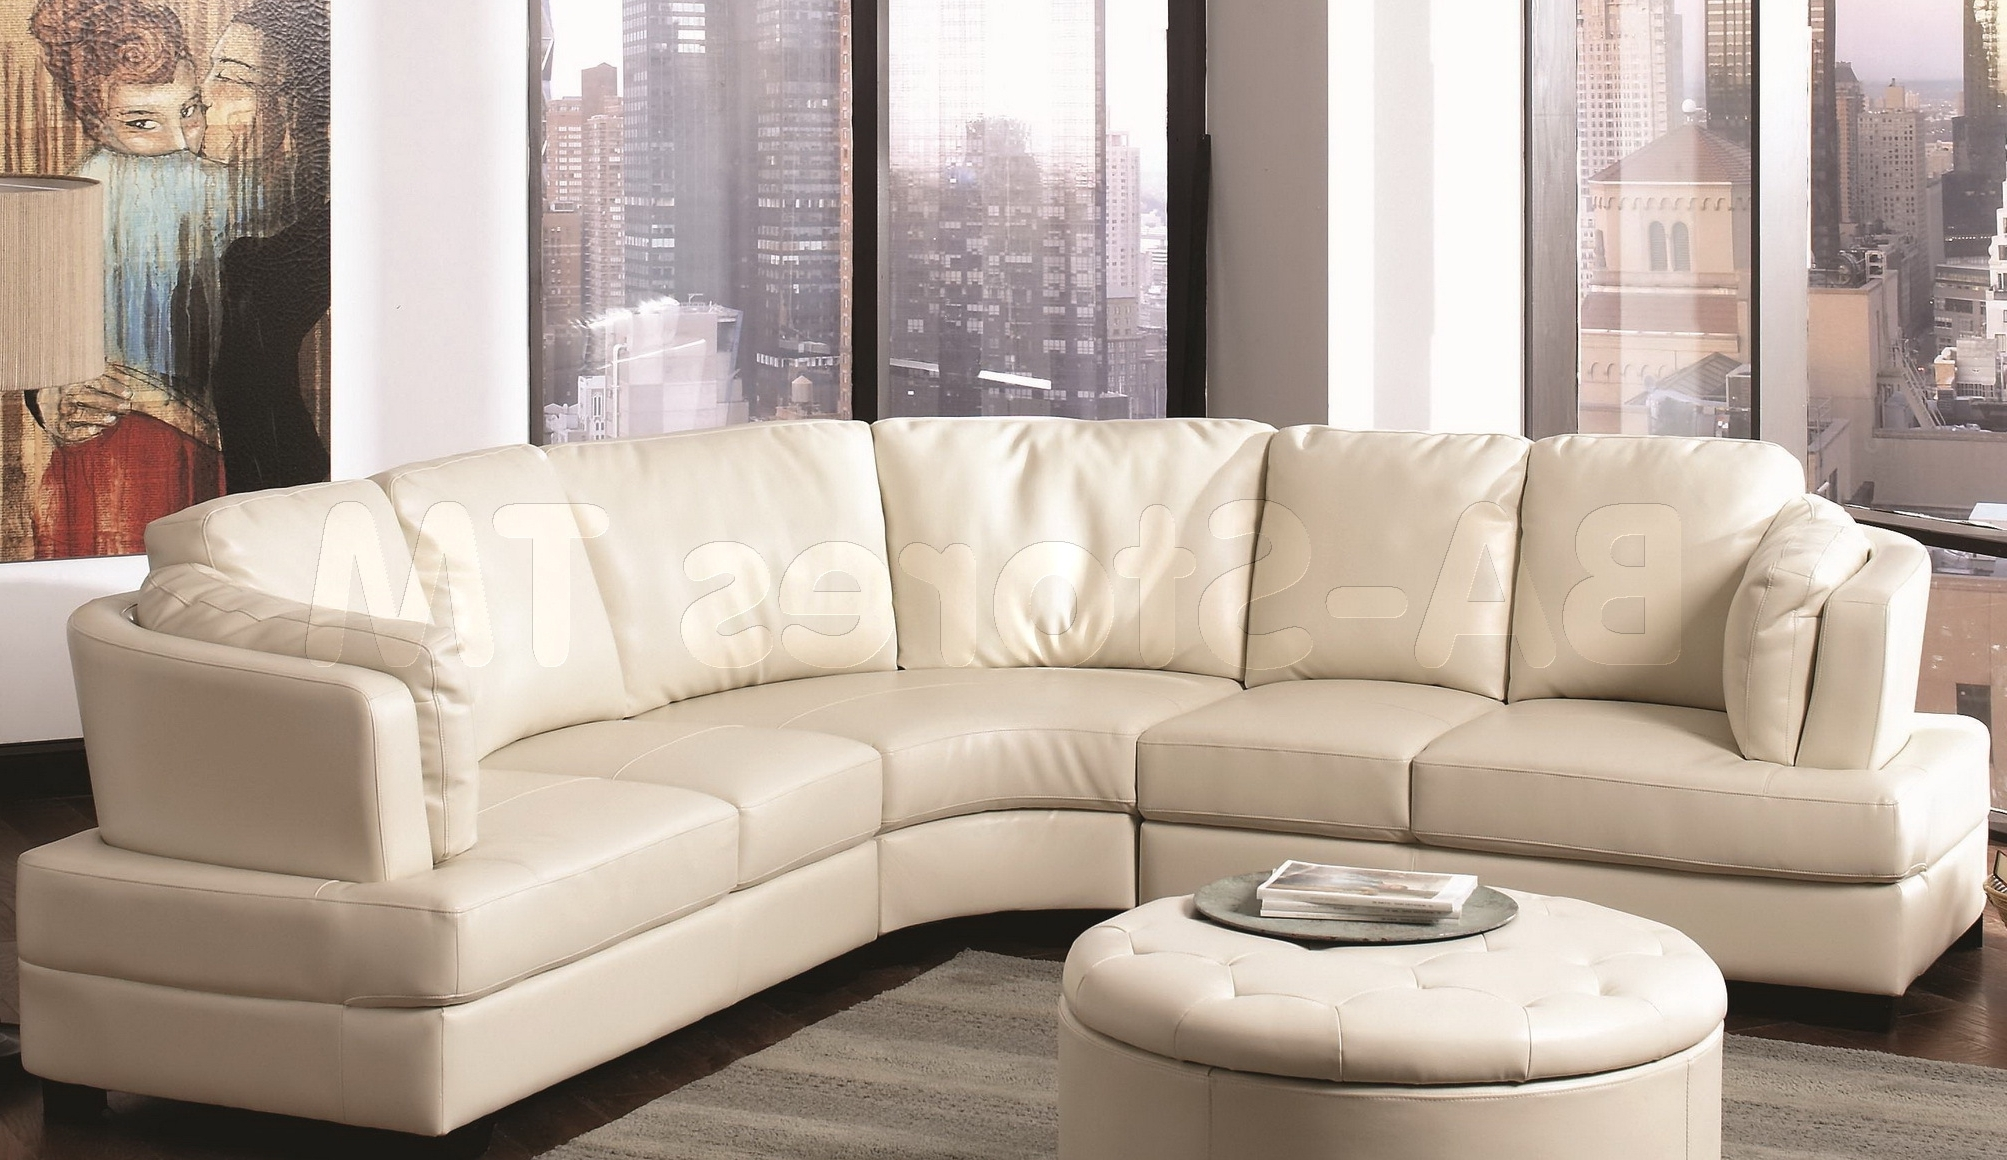 Favorite Furniture: Using Pretty Cheap Sectional Sofas Under 300 For In Tallahassee Sectional Sofas (View 5 of 15)